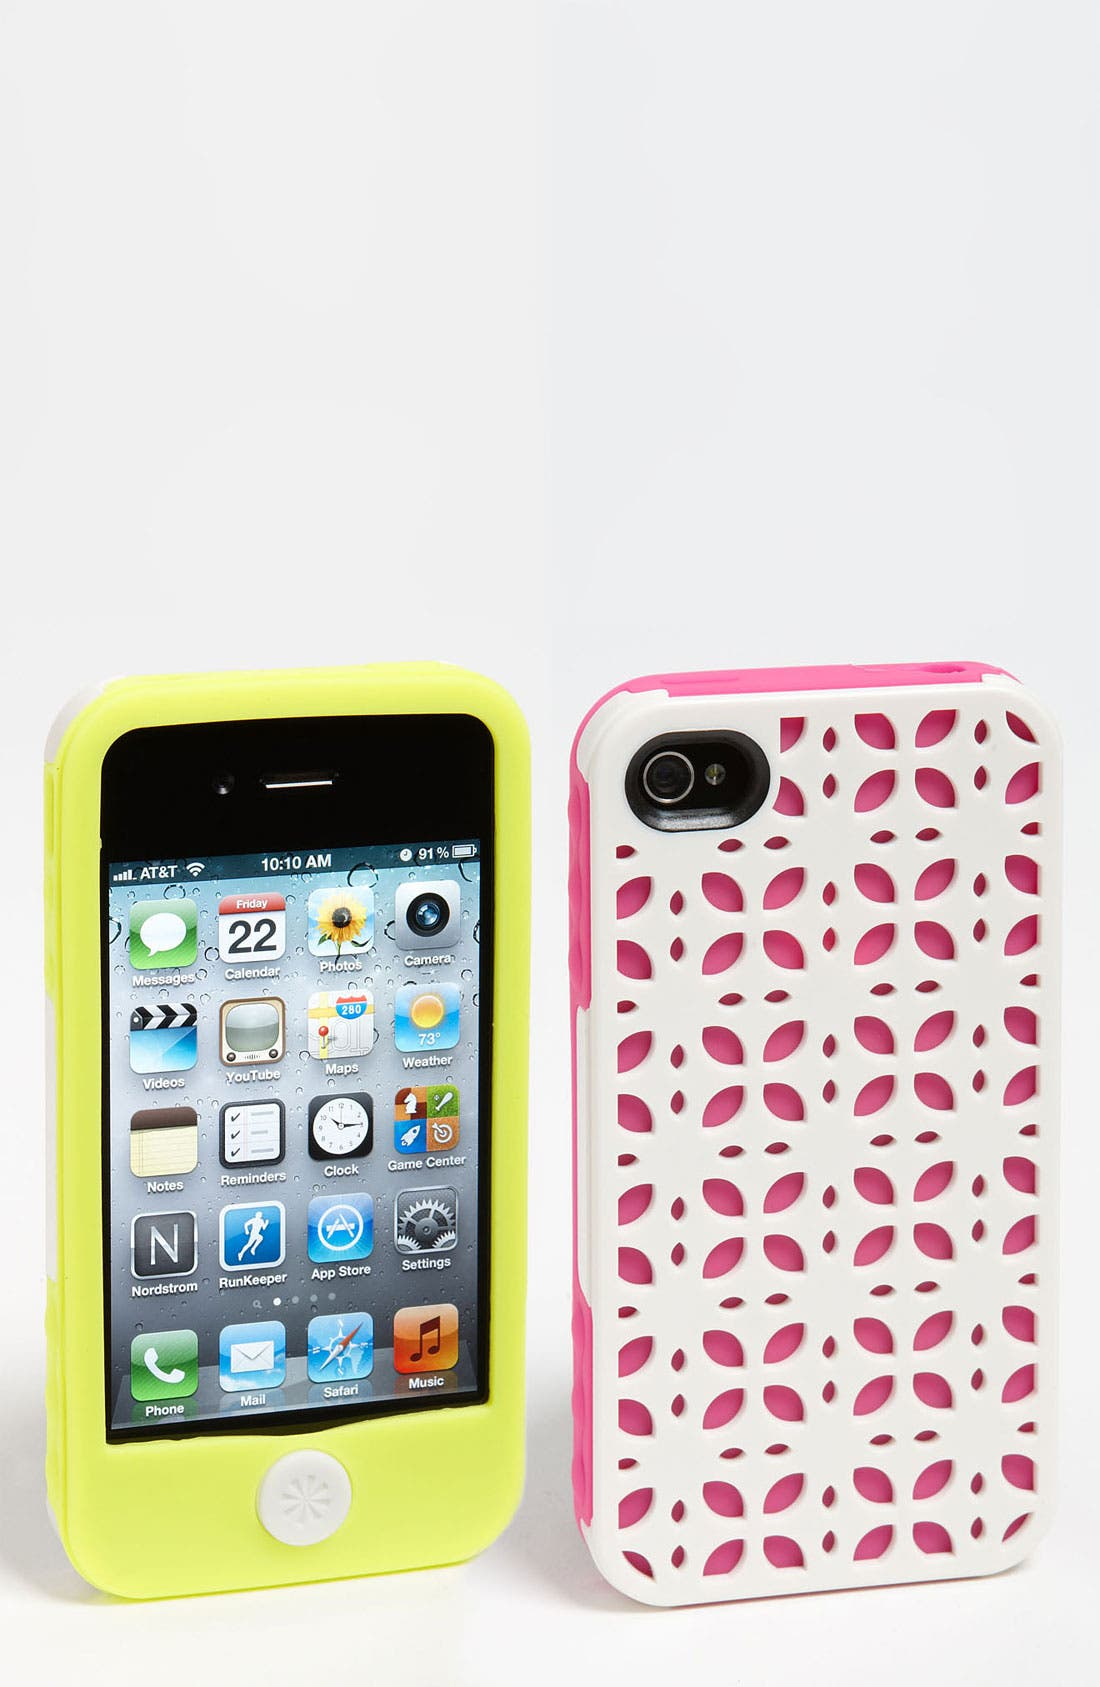 Main Image - Tech Candy 'New York' iPhone 4 & 4S Silicone Case Set